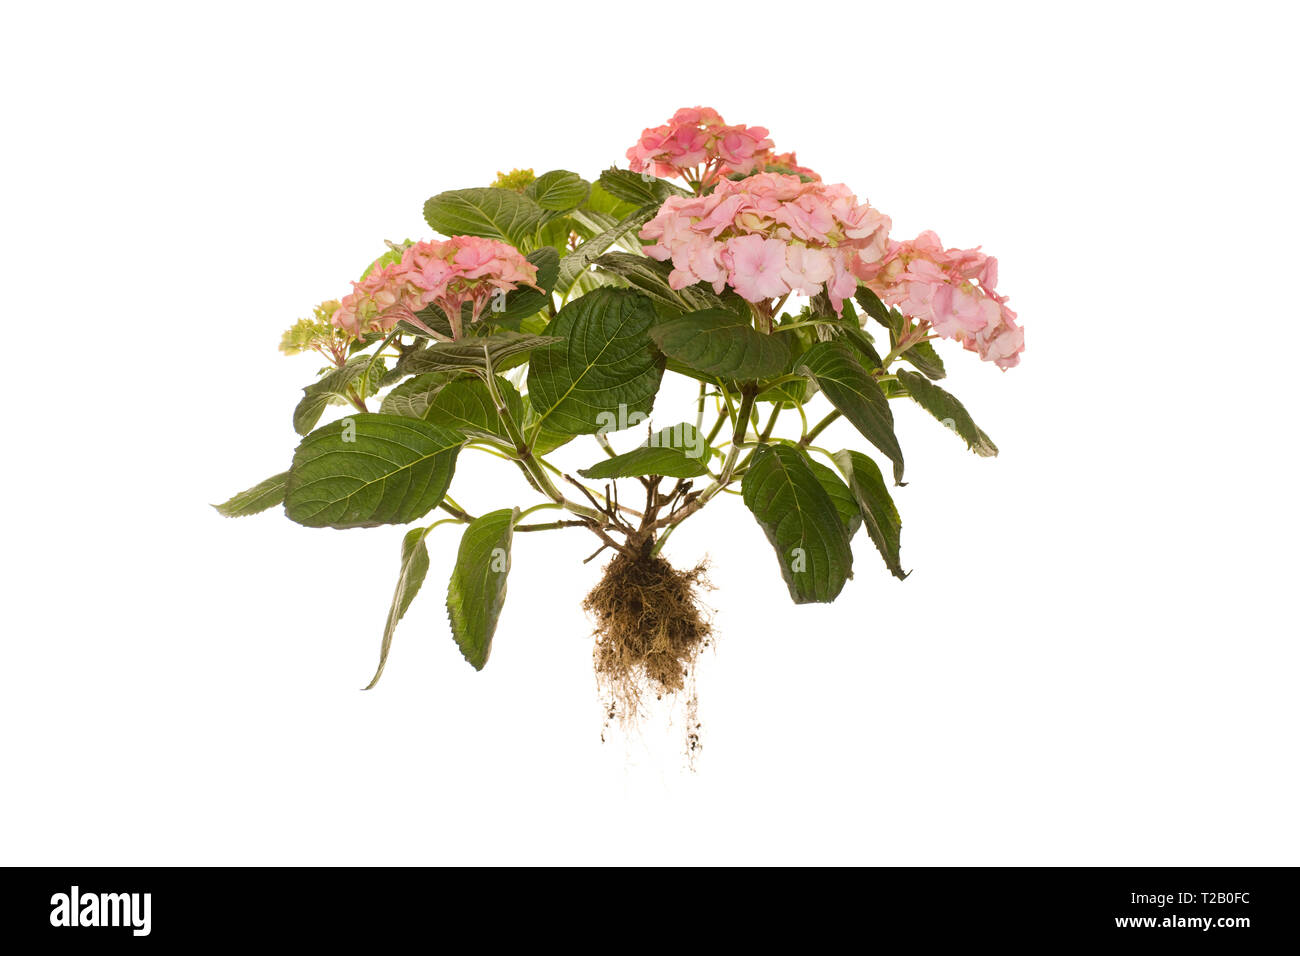 Whole Hydrangea Macrophylla Rosita Plant with roots on ilsoted white background - Stock Image